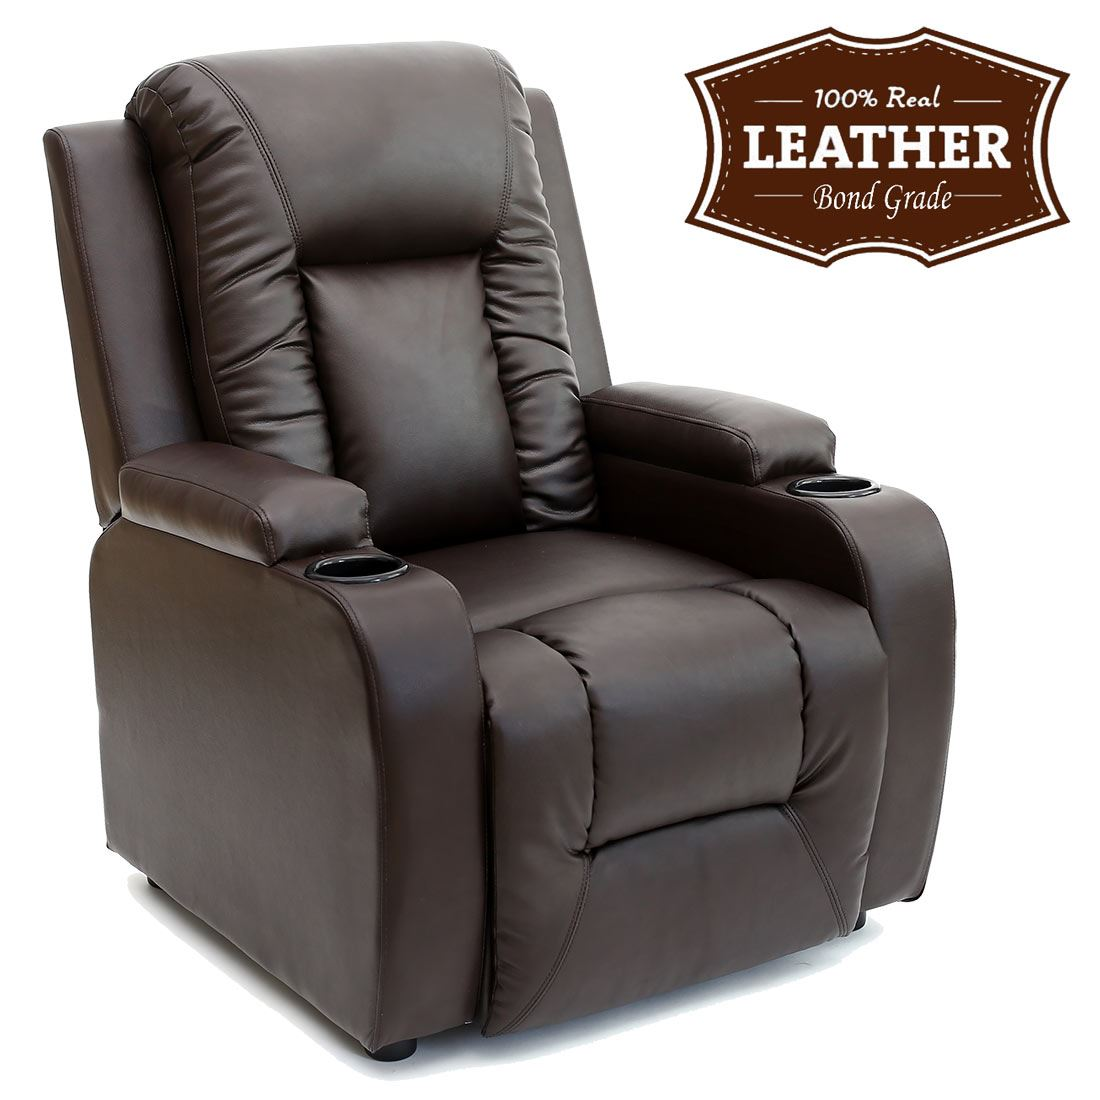 recliners taupe products brown adelino grayish leather home recliner crawford cindy contemporary